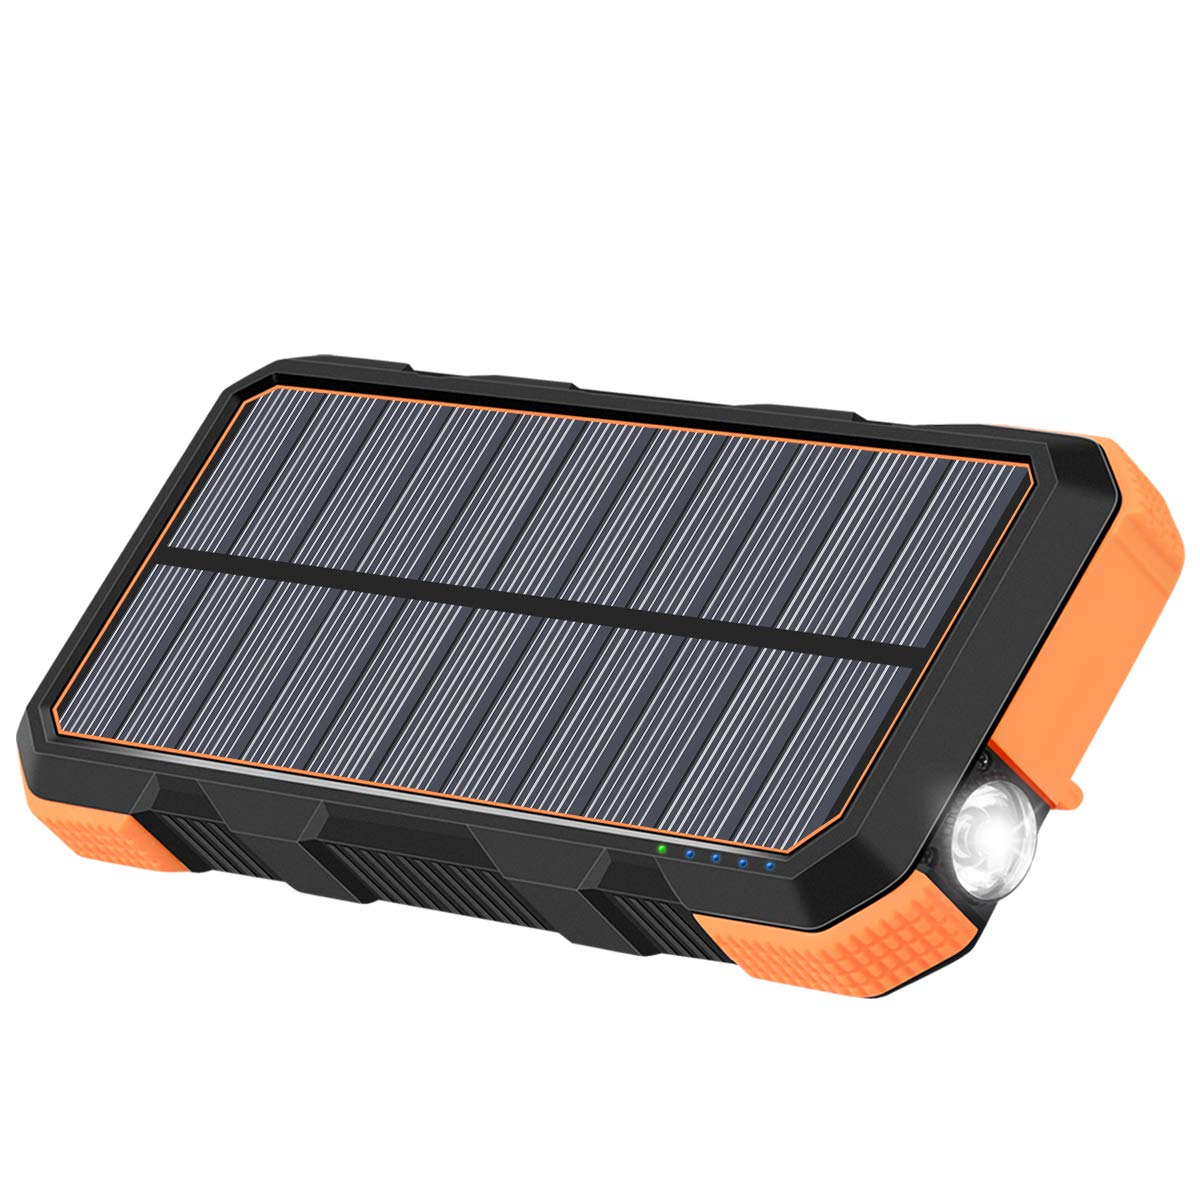 Hiluckey Solar Charger with 4 Outputs Wireless Portable Charger USB C External Battery Pack Quick Charge 3.0A with Dual Flashlights for Smartphones Tablets Switch Solar Power Bank 26800mAh